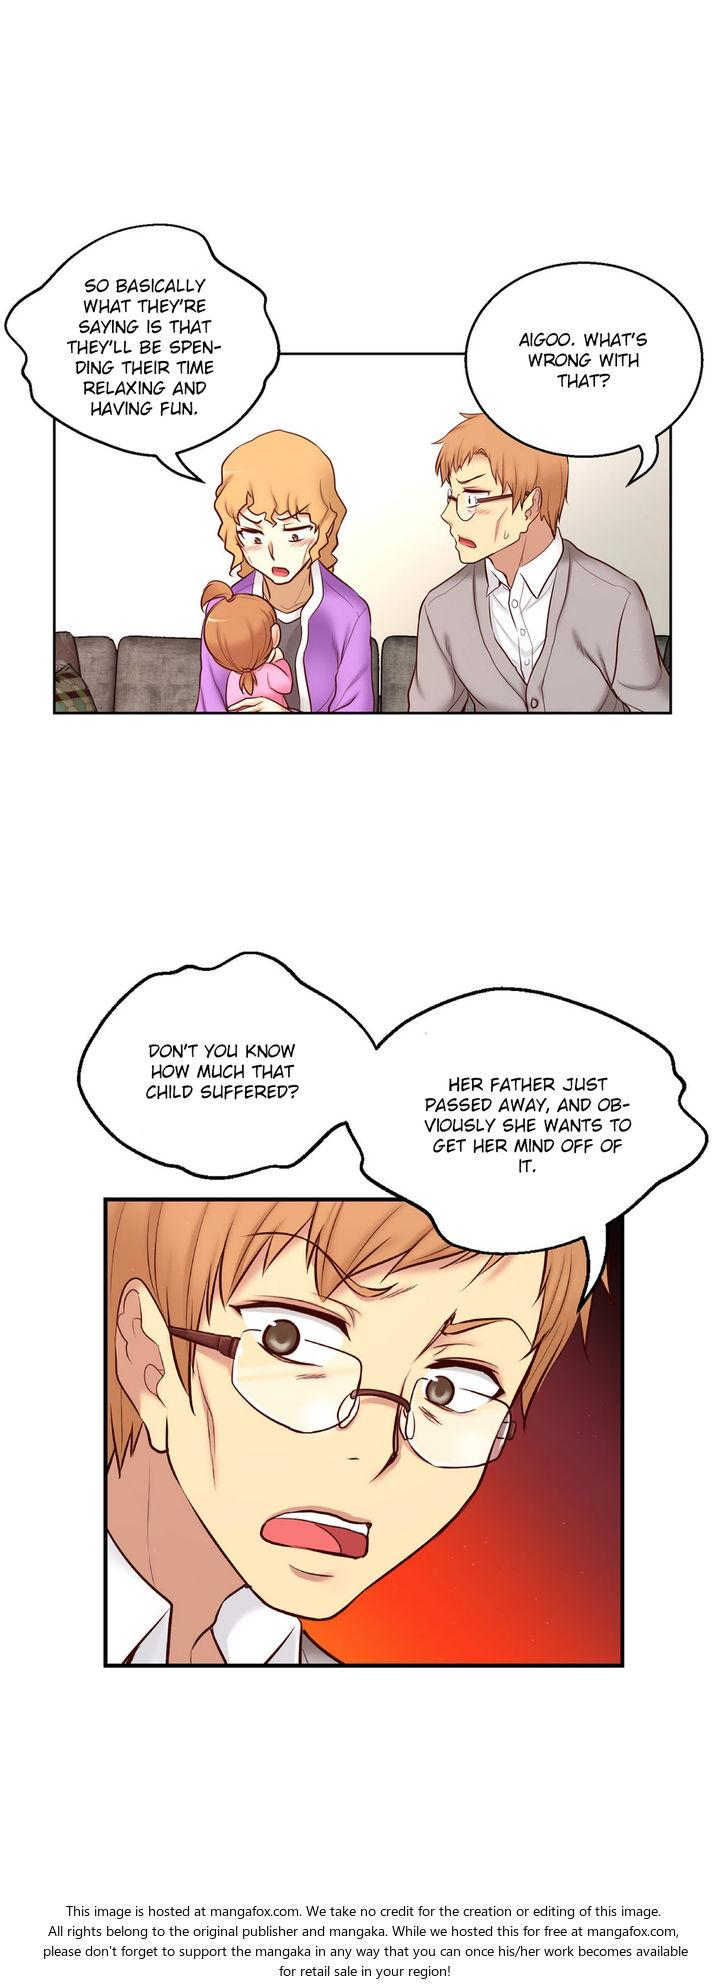 [Donggul Gom] She is Young (English) Part 1/2 1985